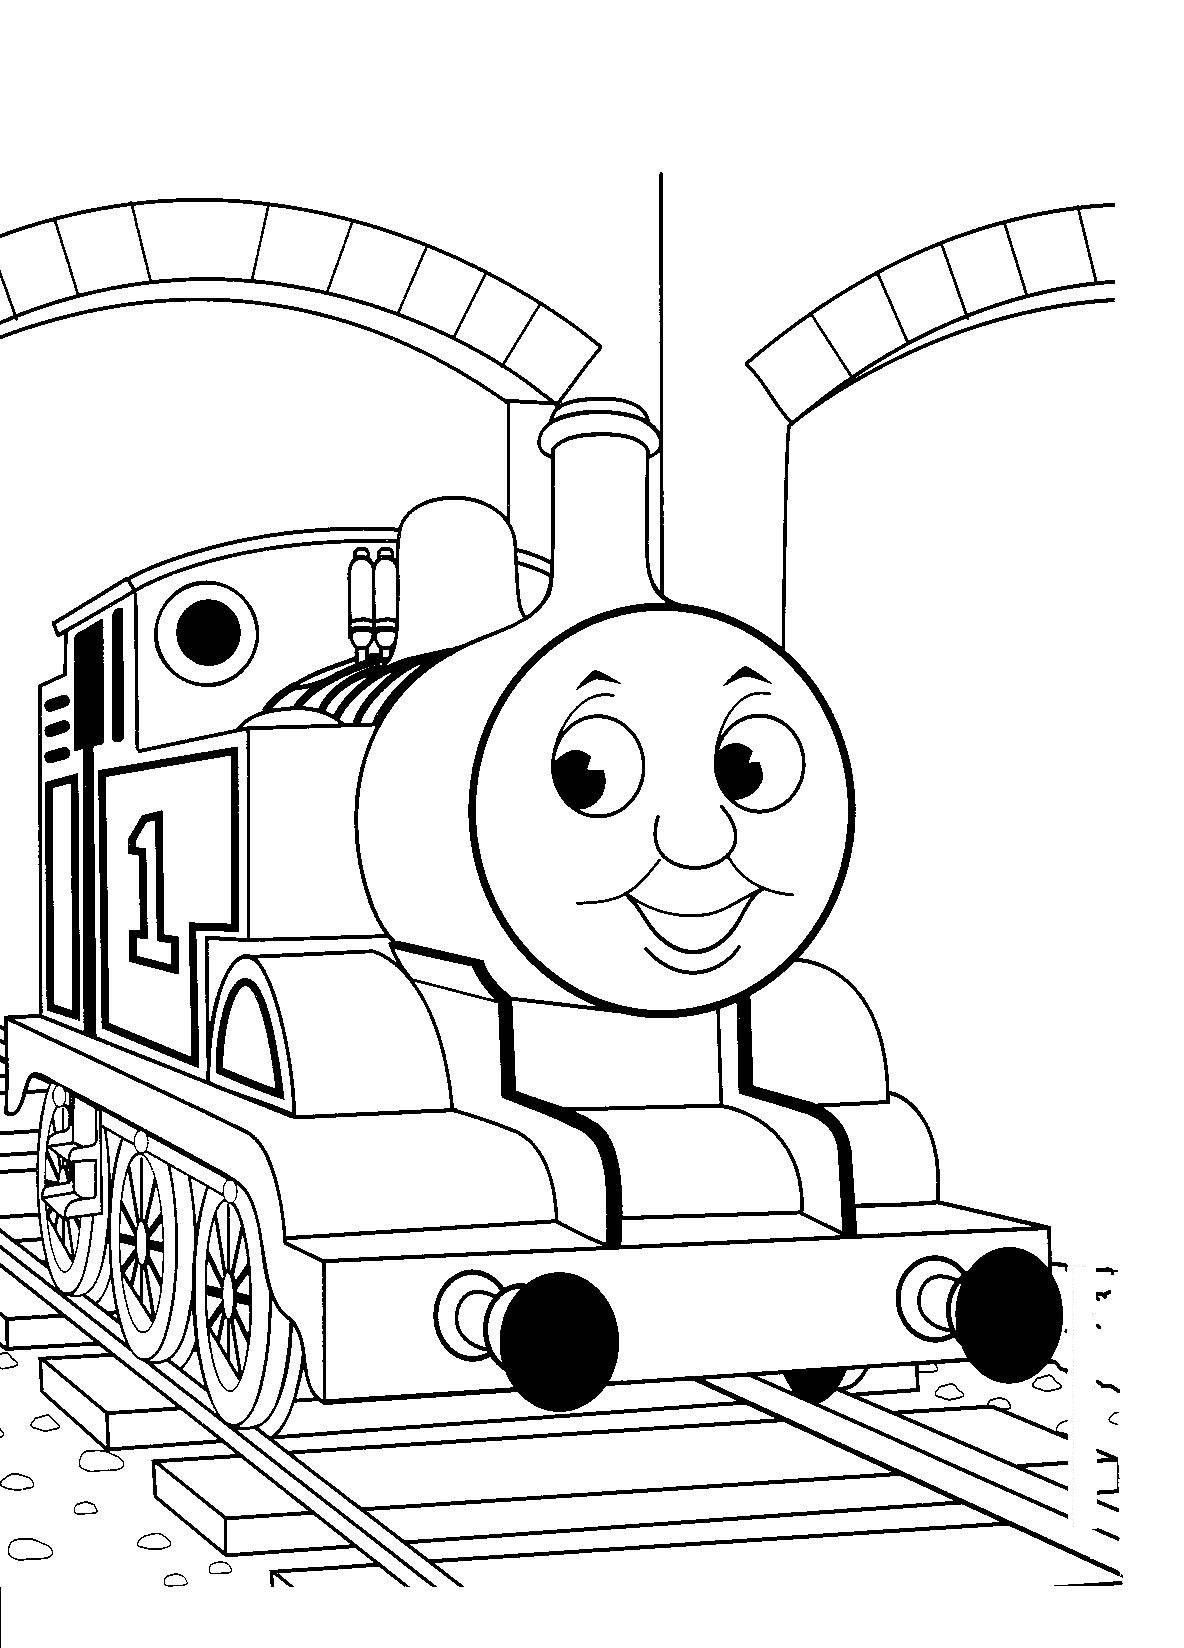 easy train coloring pages collection of train simple drawing download them and try train coloring easy pages